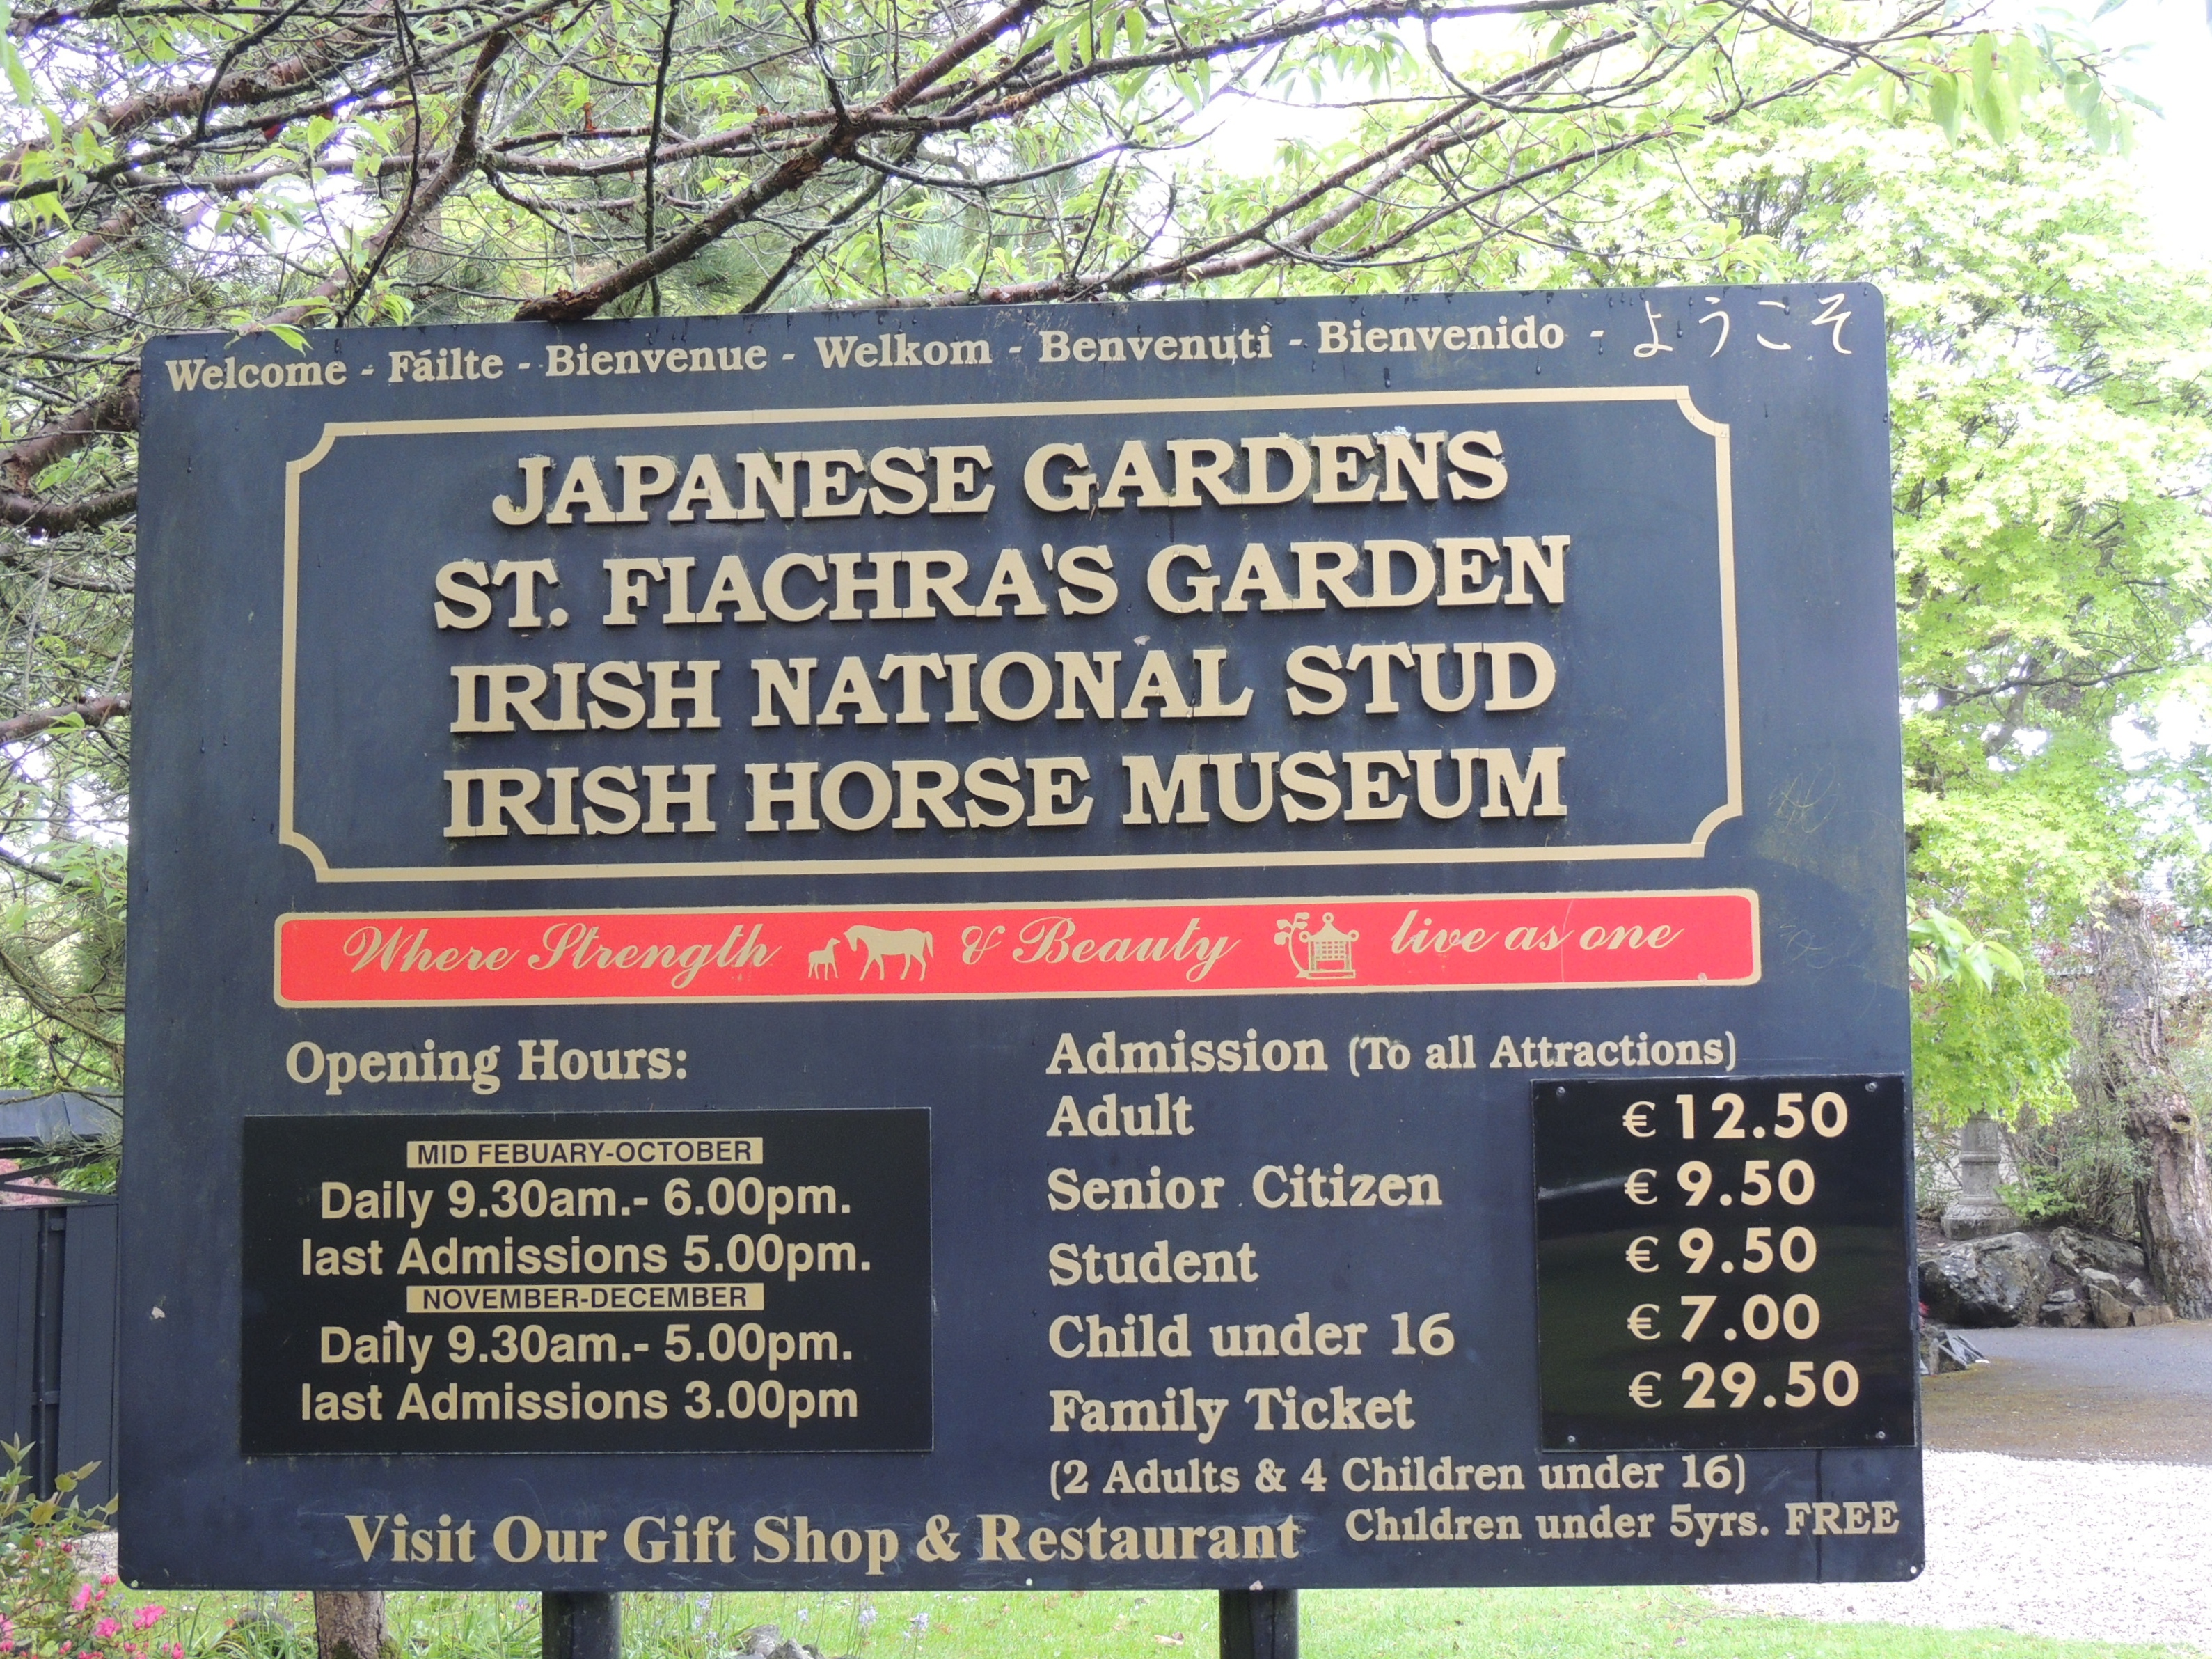 Irish National Stud: The Irish National Stud And Japanese Garden